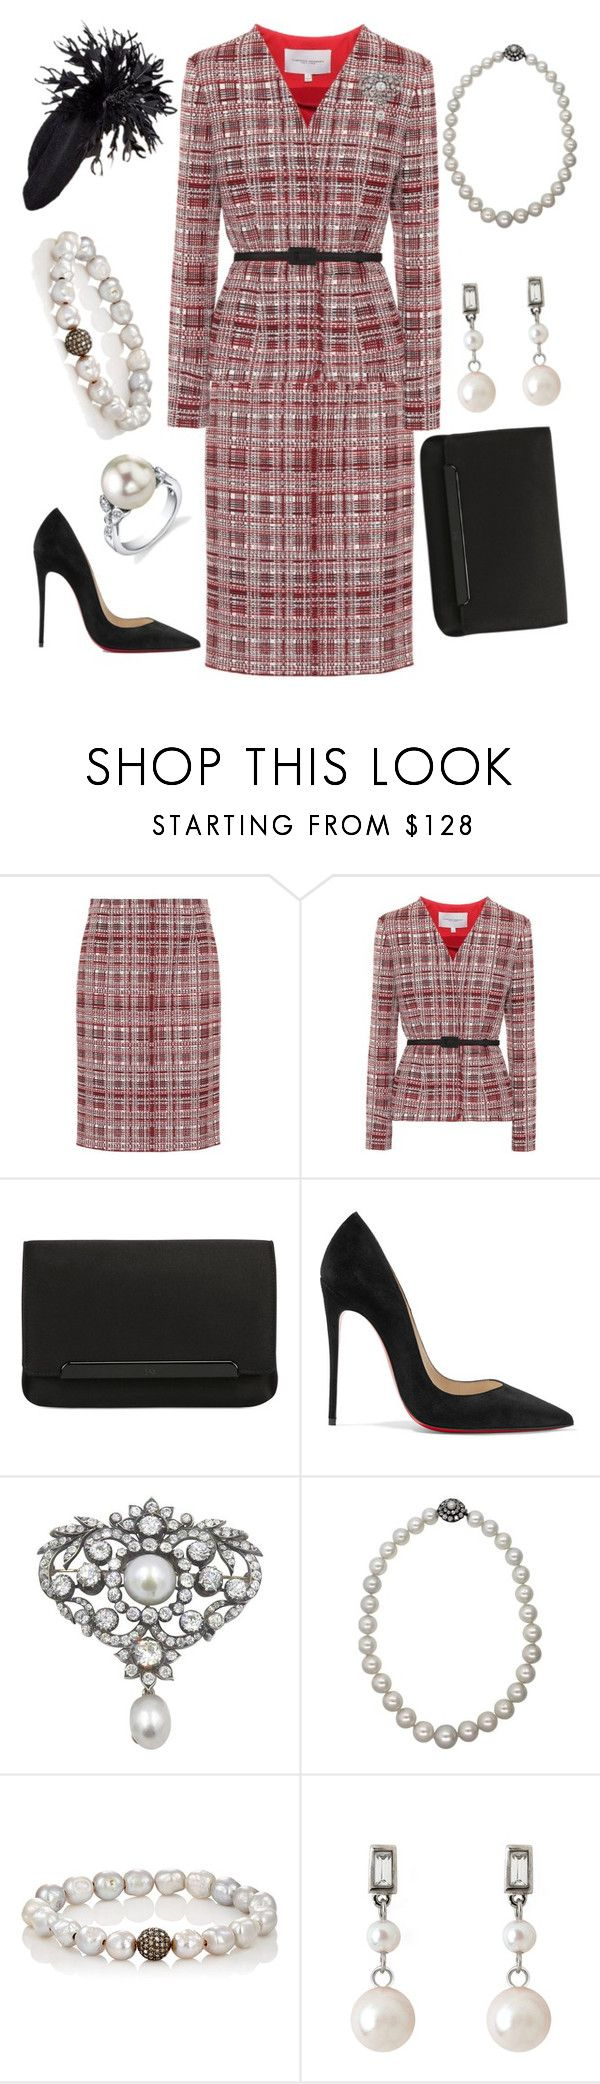 """""""Investiture Ceremony"""" by nmccullough ❤ liked on Polyvore featuring Carolina Herrera, Christian Louboutin, Epoque, Devon Page McCleary and Brooks Brothers"""